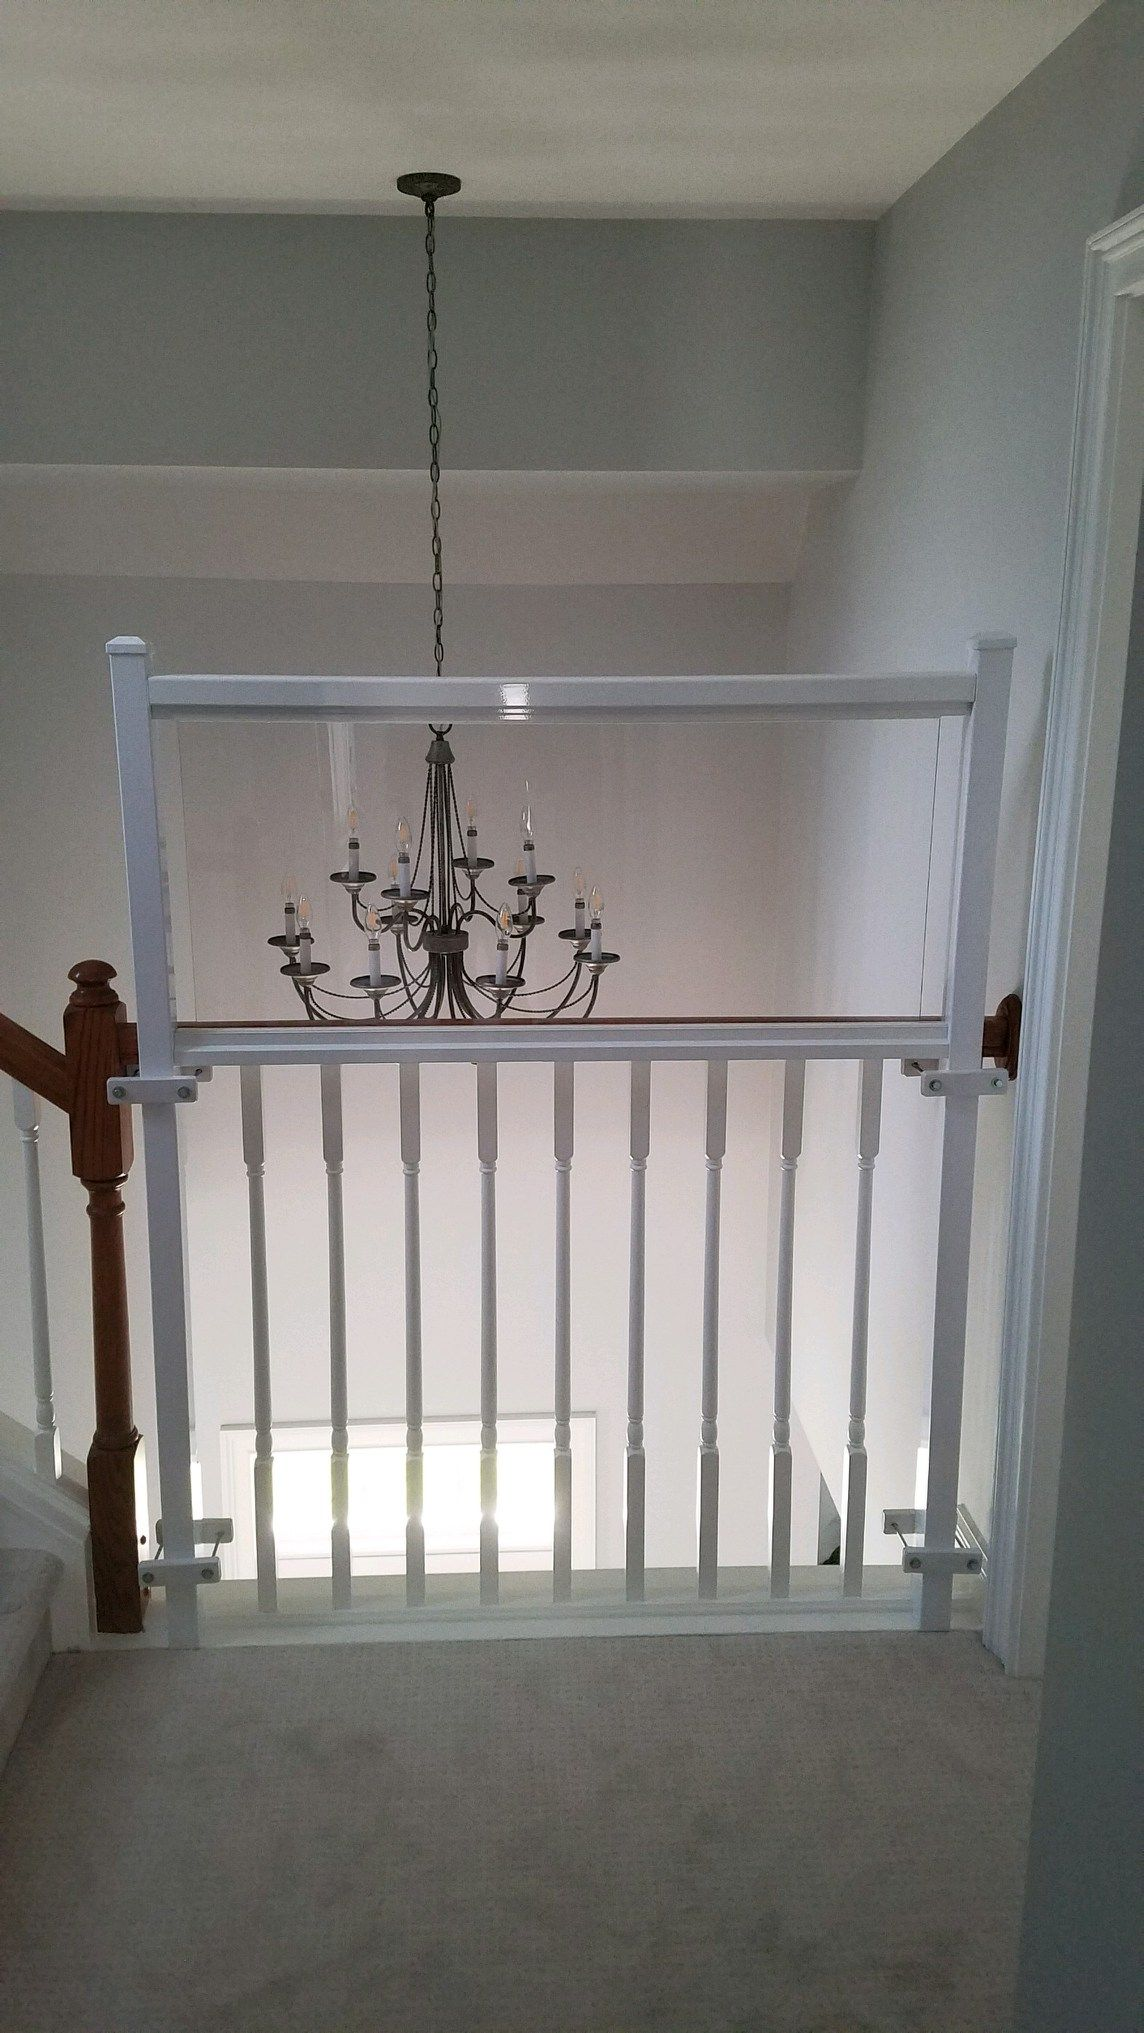 Banister safety Wall . My customer install this himself